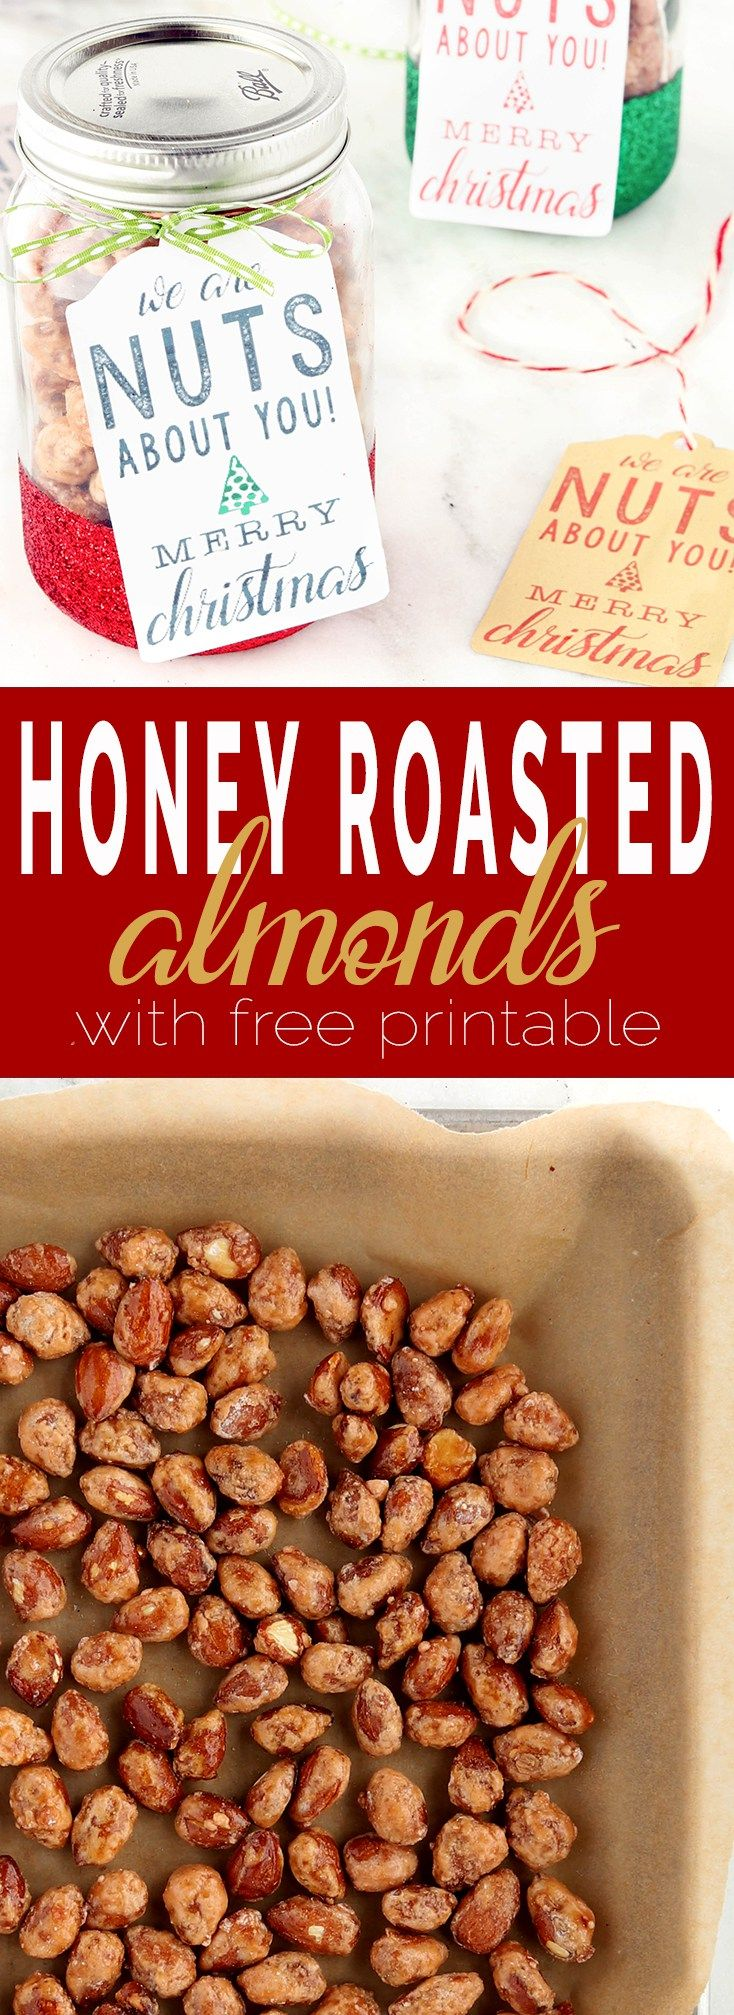 Easy, whole food honey roasted almonds made from scratch with toasted almonds, coconut sugar, honey and coconut oil. Refined sugar free, vegan and gluten-free.